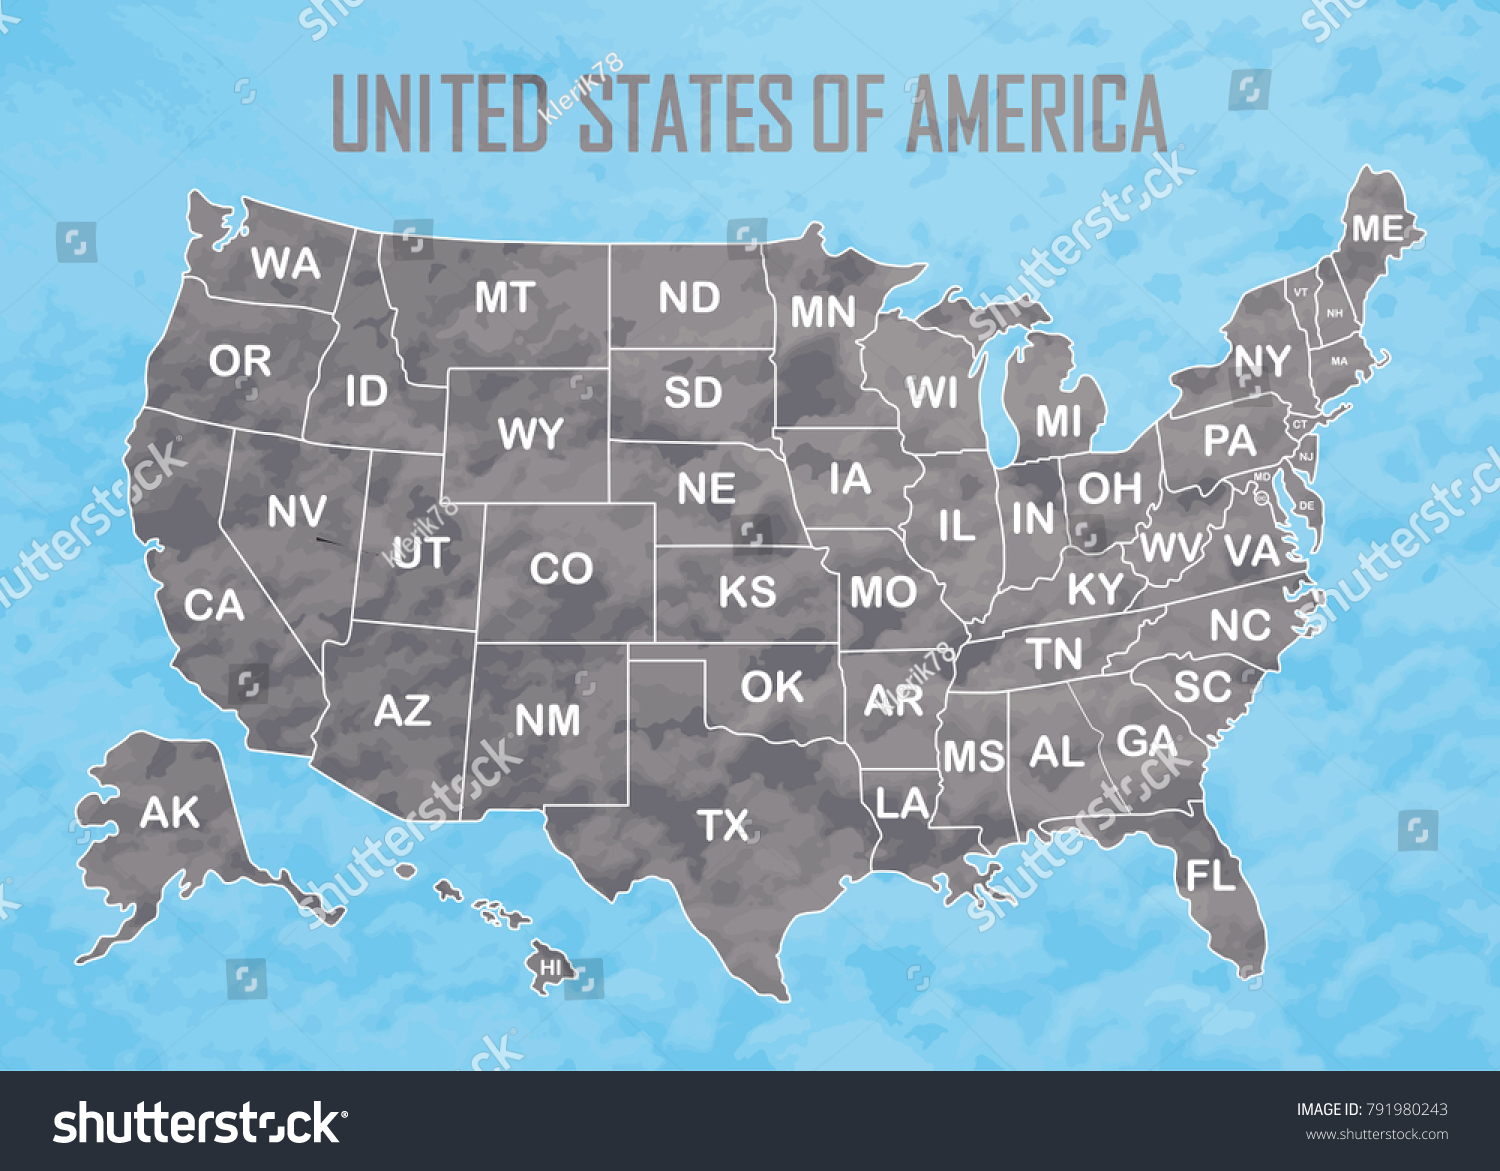 Poster Map United States America State Stock Photo Photo Vector